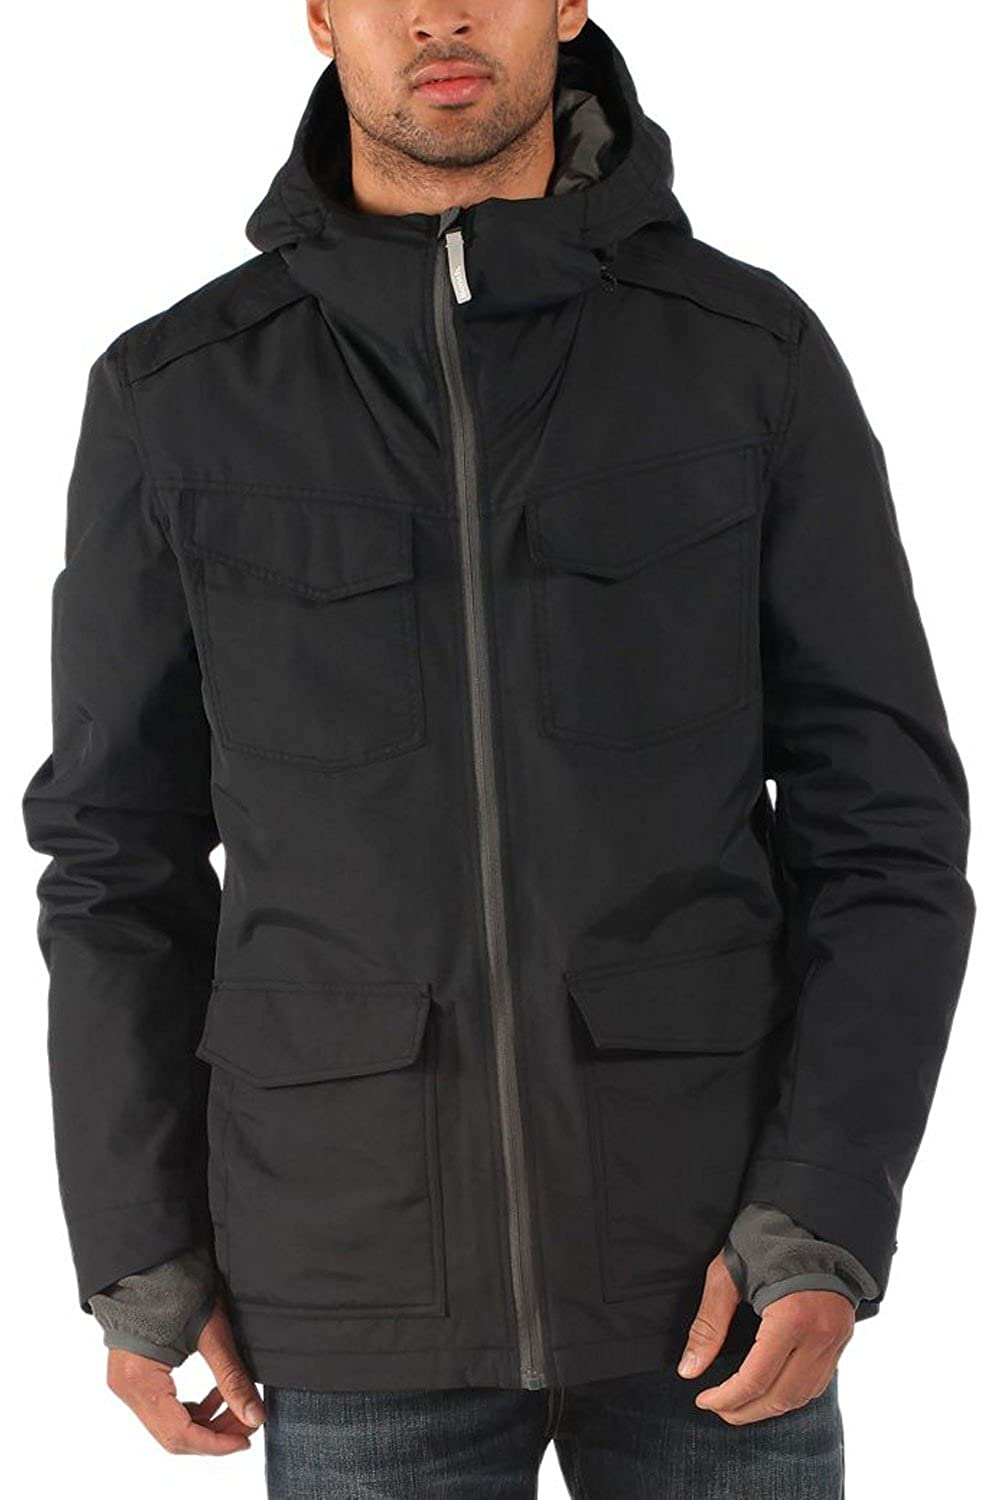 Bench Takeoff Point Jacke Jet Black günstig kaufen